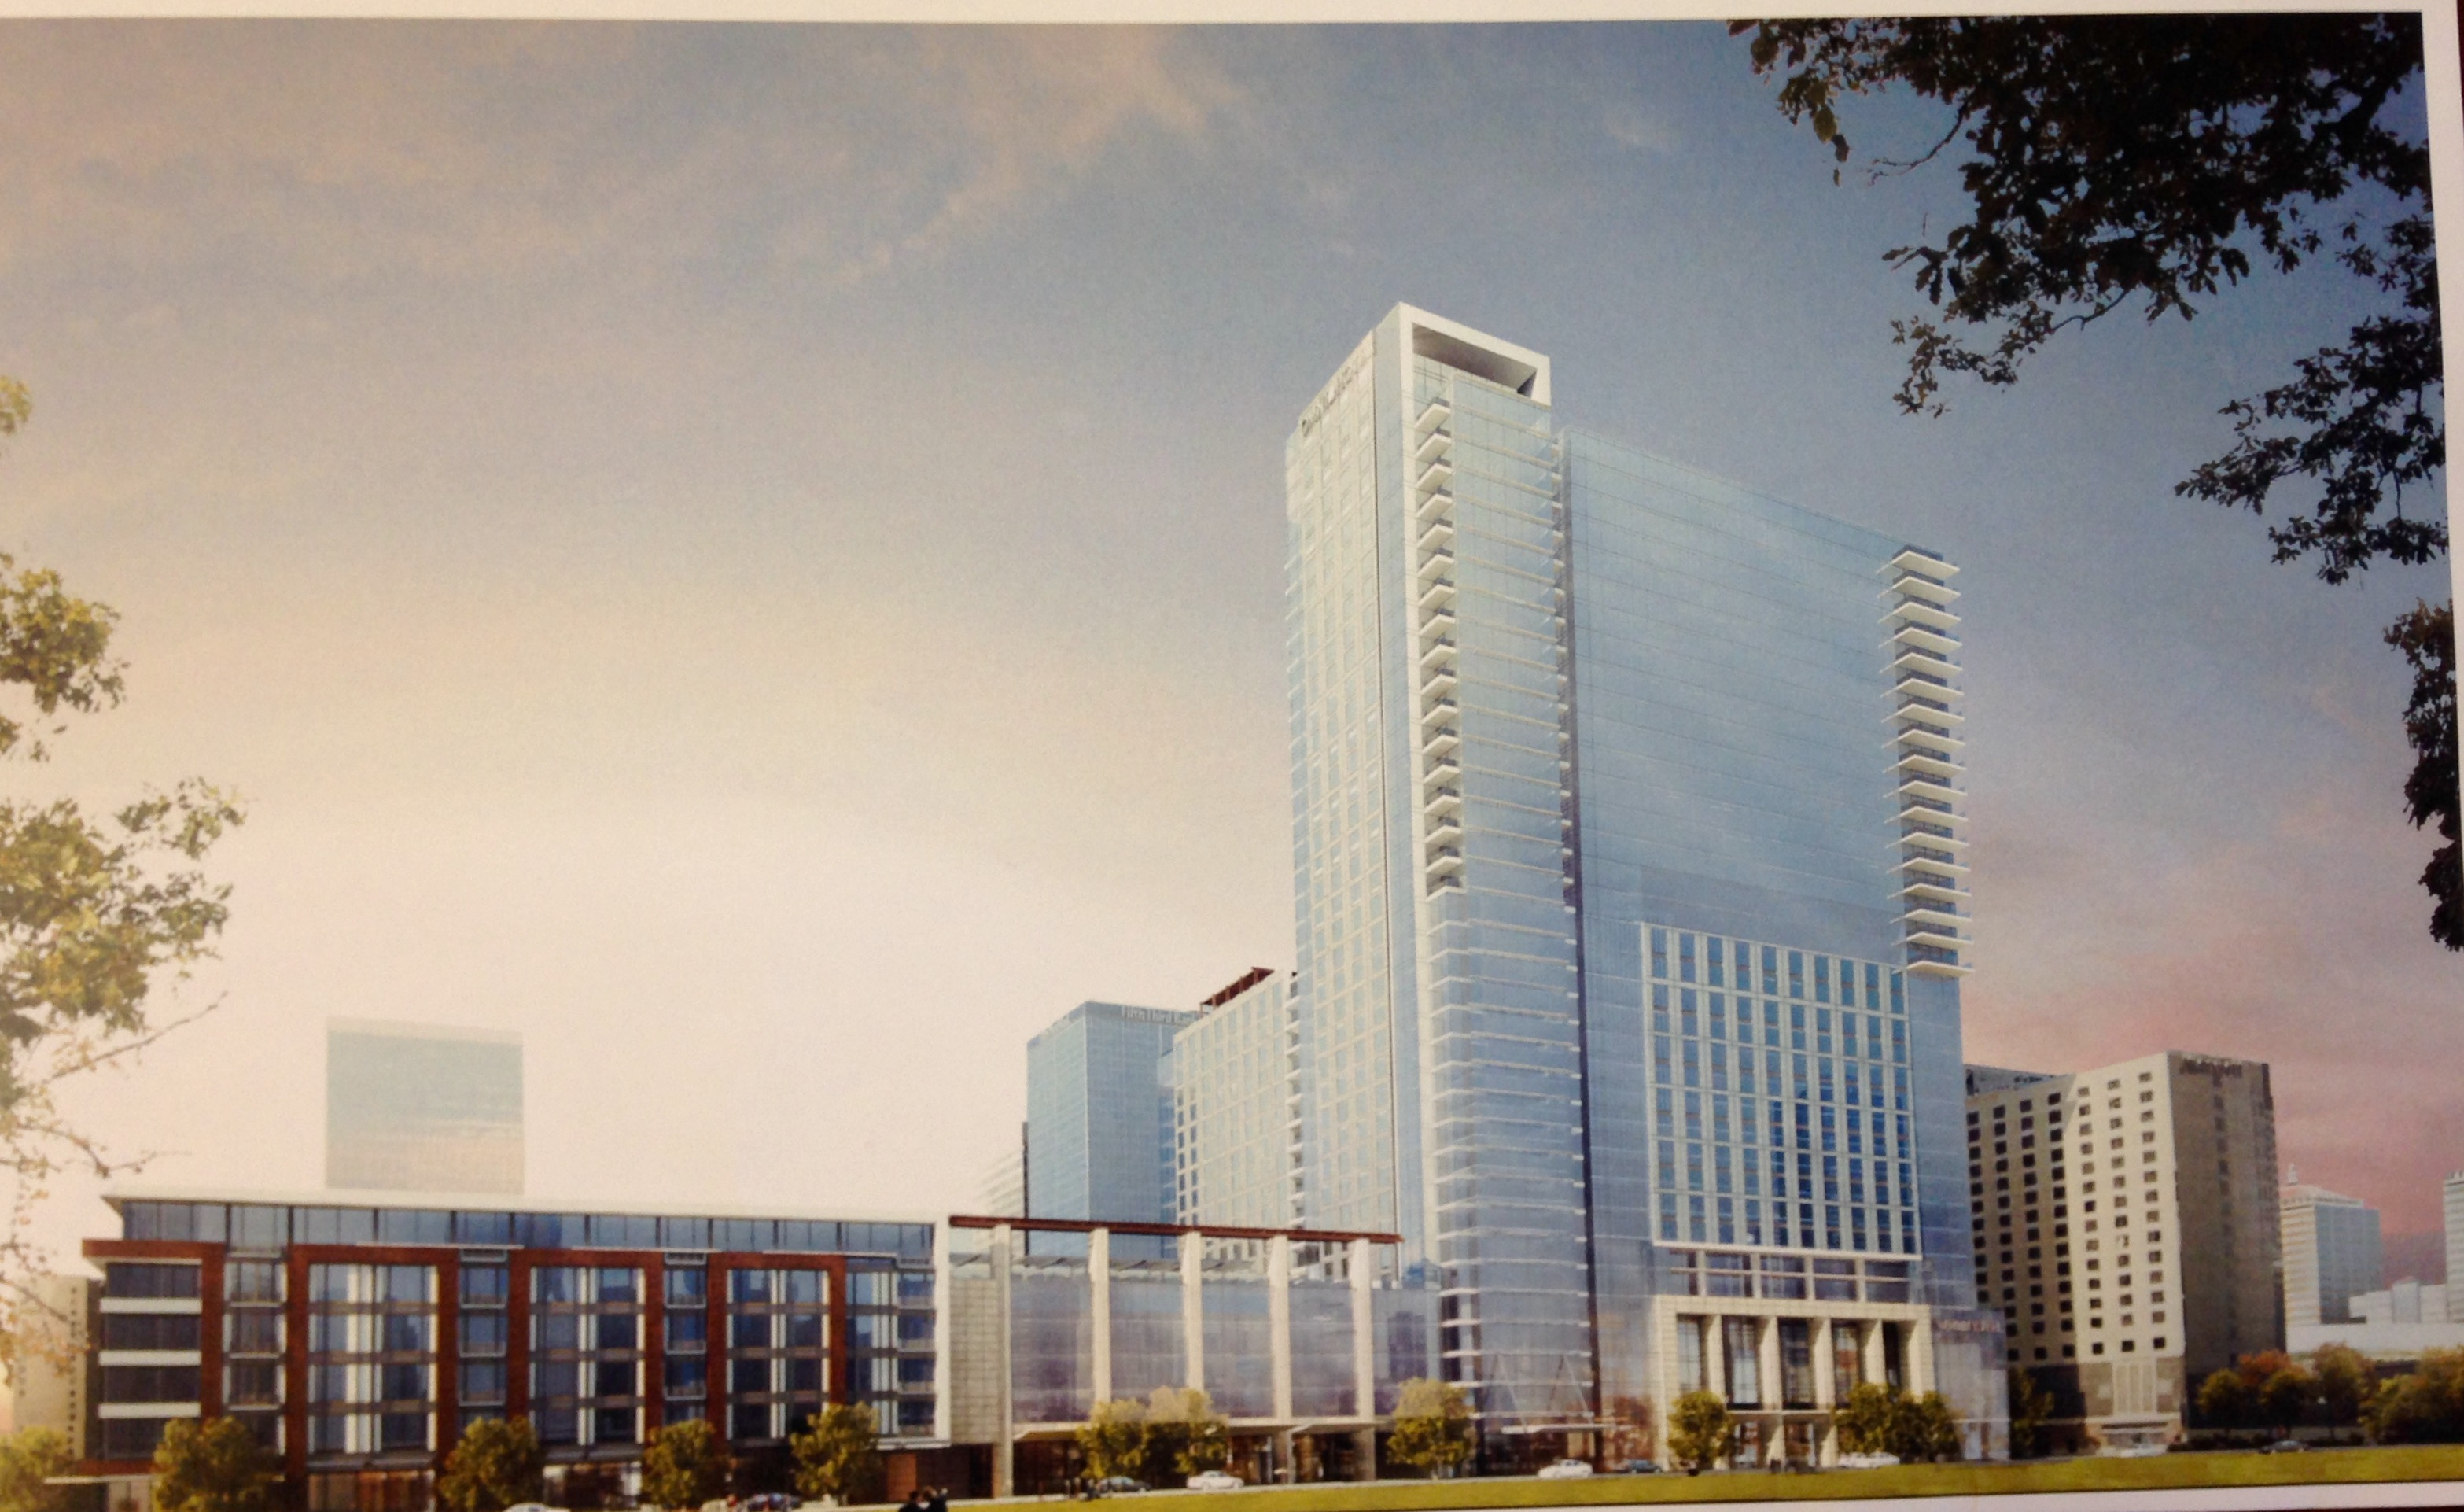 omni hotel finalizes deal to begin construction in louisville the project is estimated to create 765 construction jobs 20 percent minority and 5 percent w owned business participation and 320 permanent